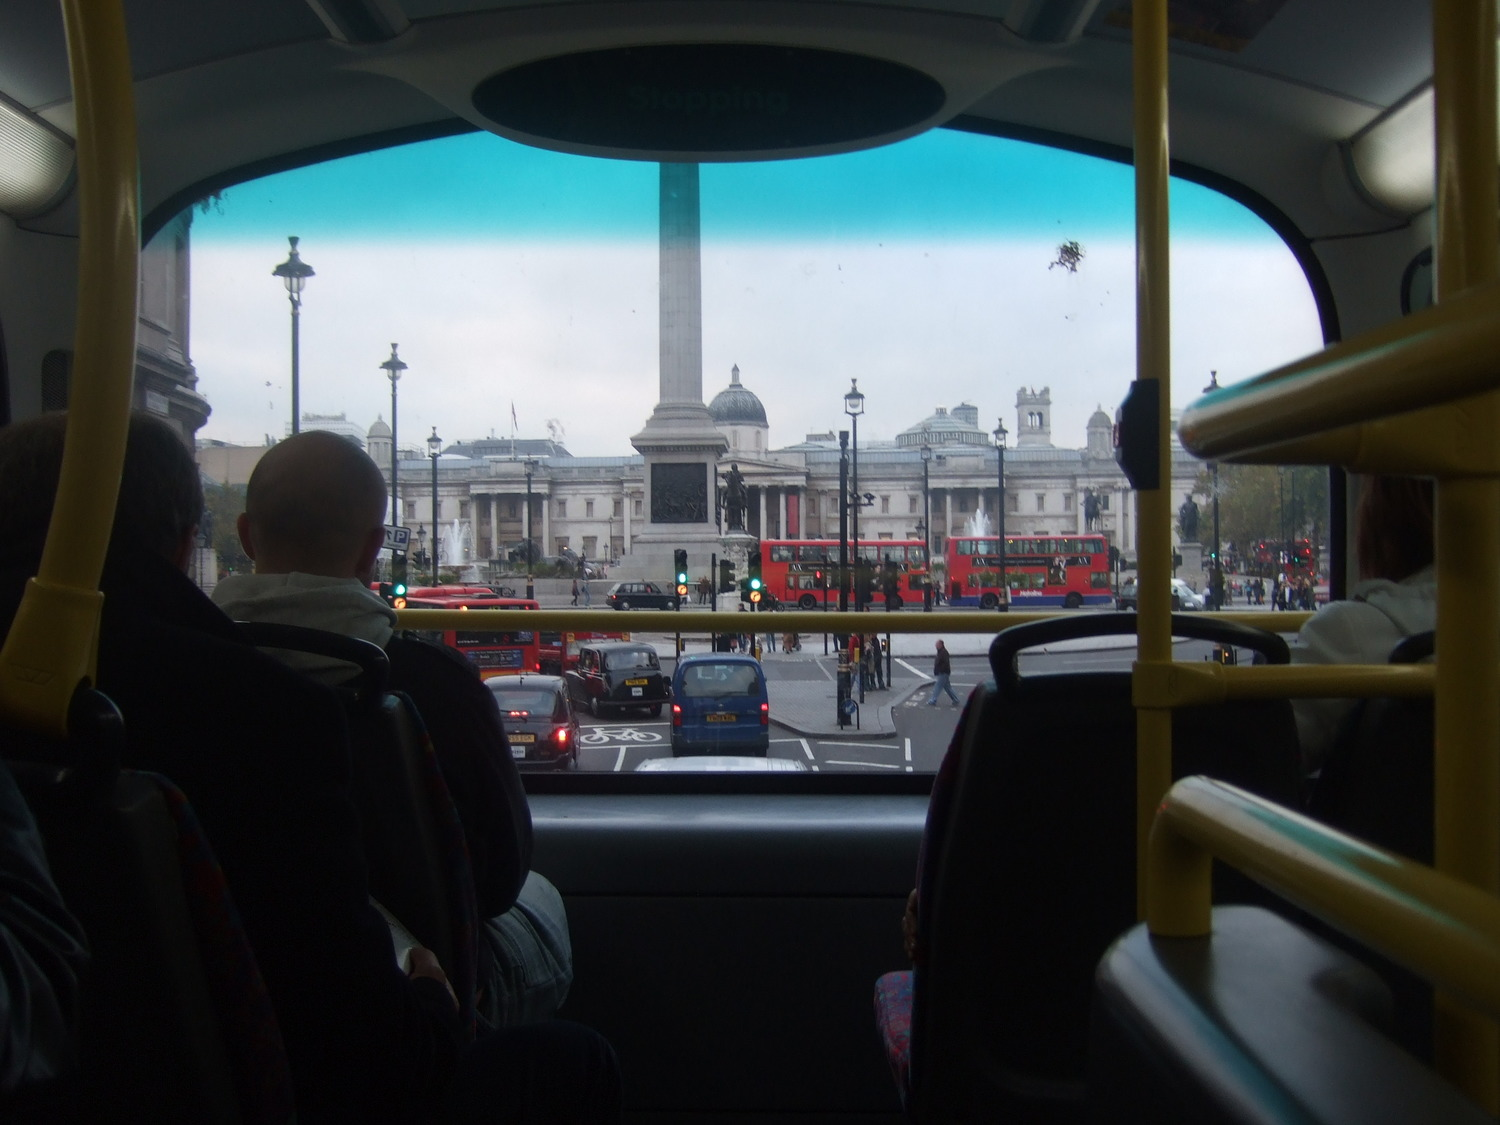 14_The_main_London_sights_may_be_seen_through_the_windows_of_tho-decker_bus